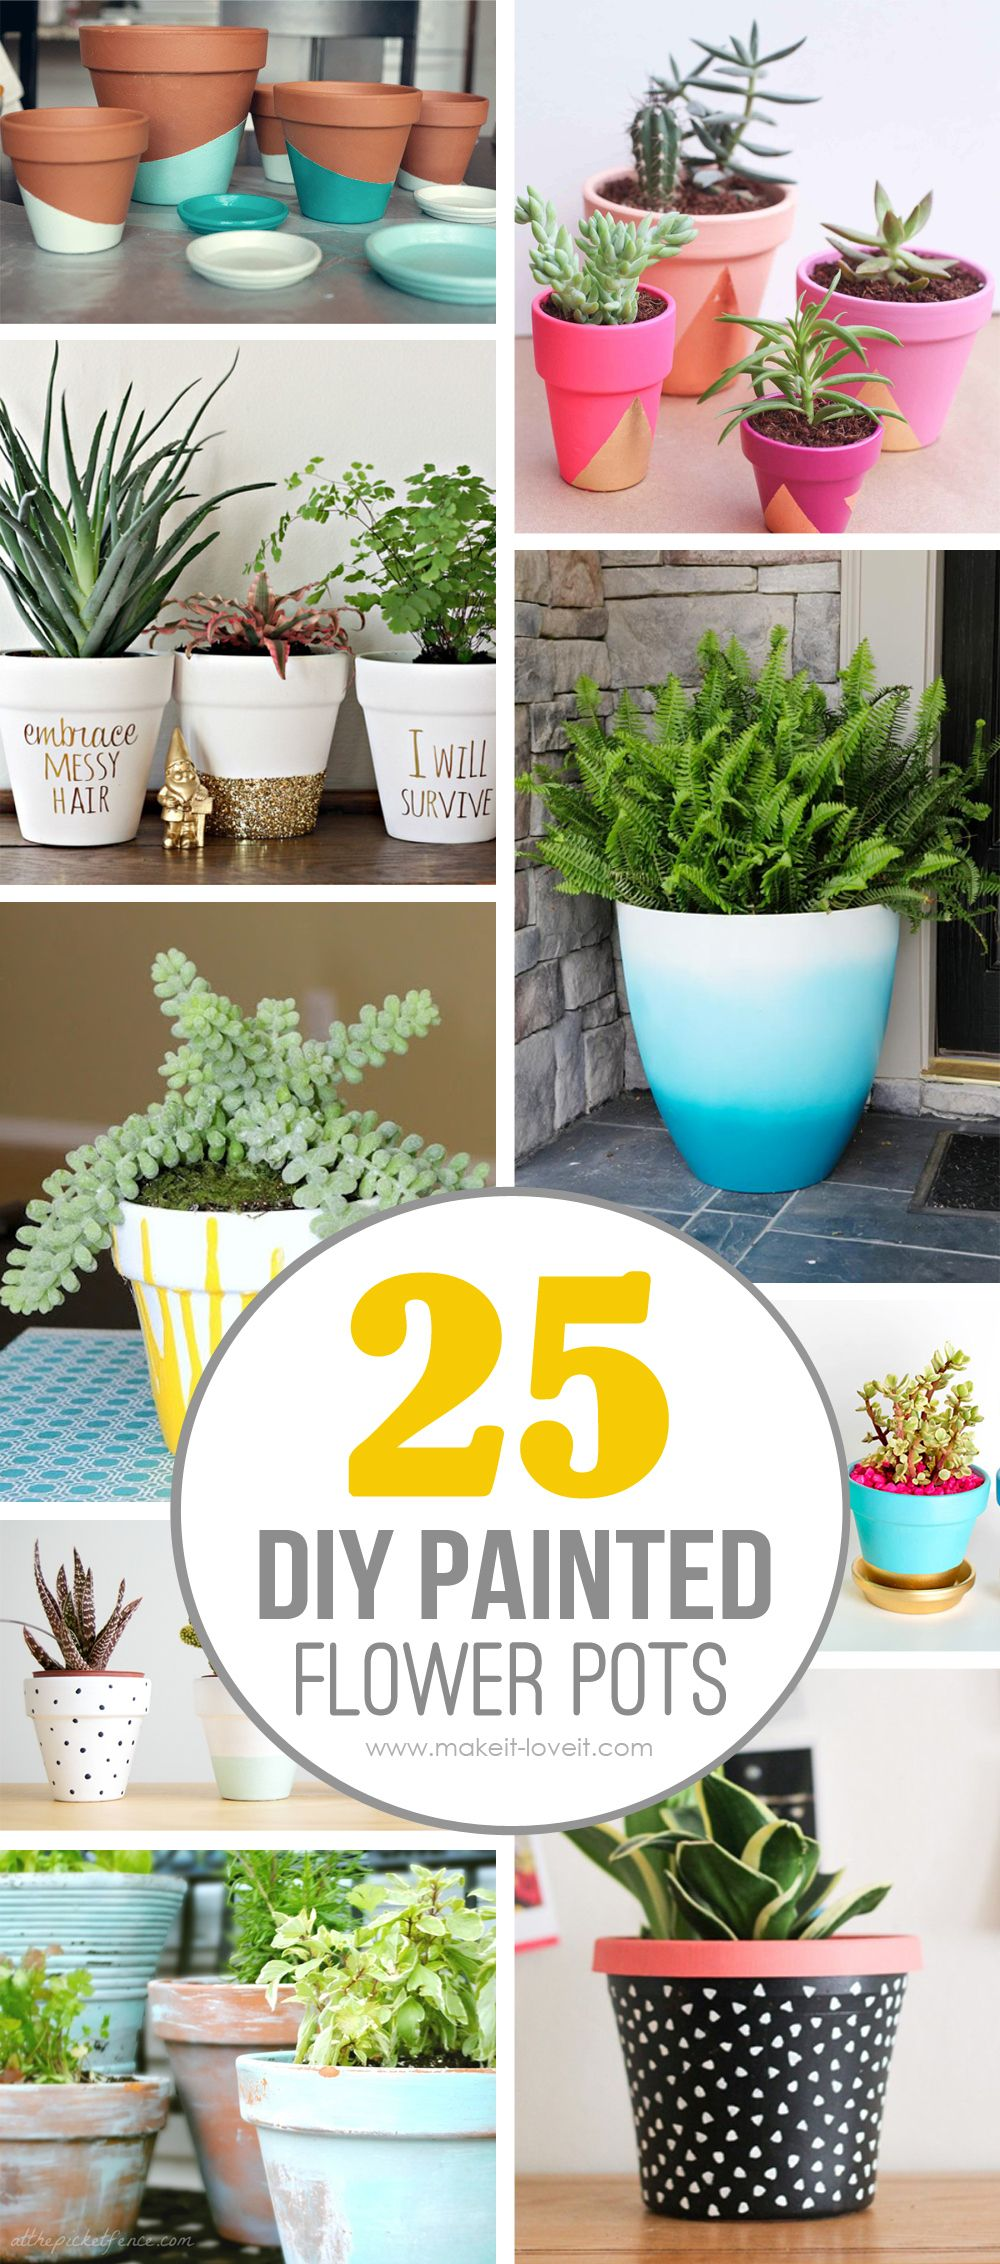 25 diy painted flower pot ideasyou'll love | via make it and